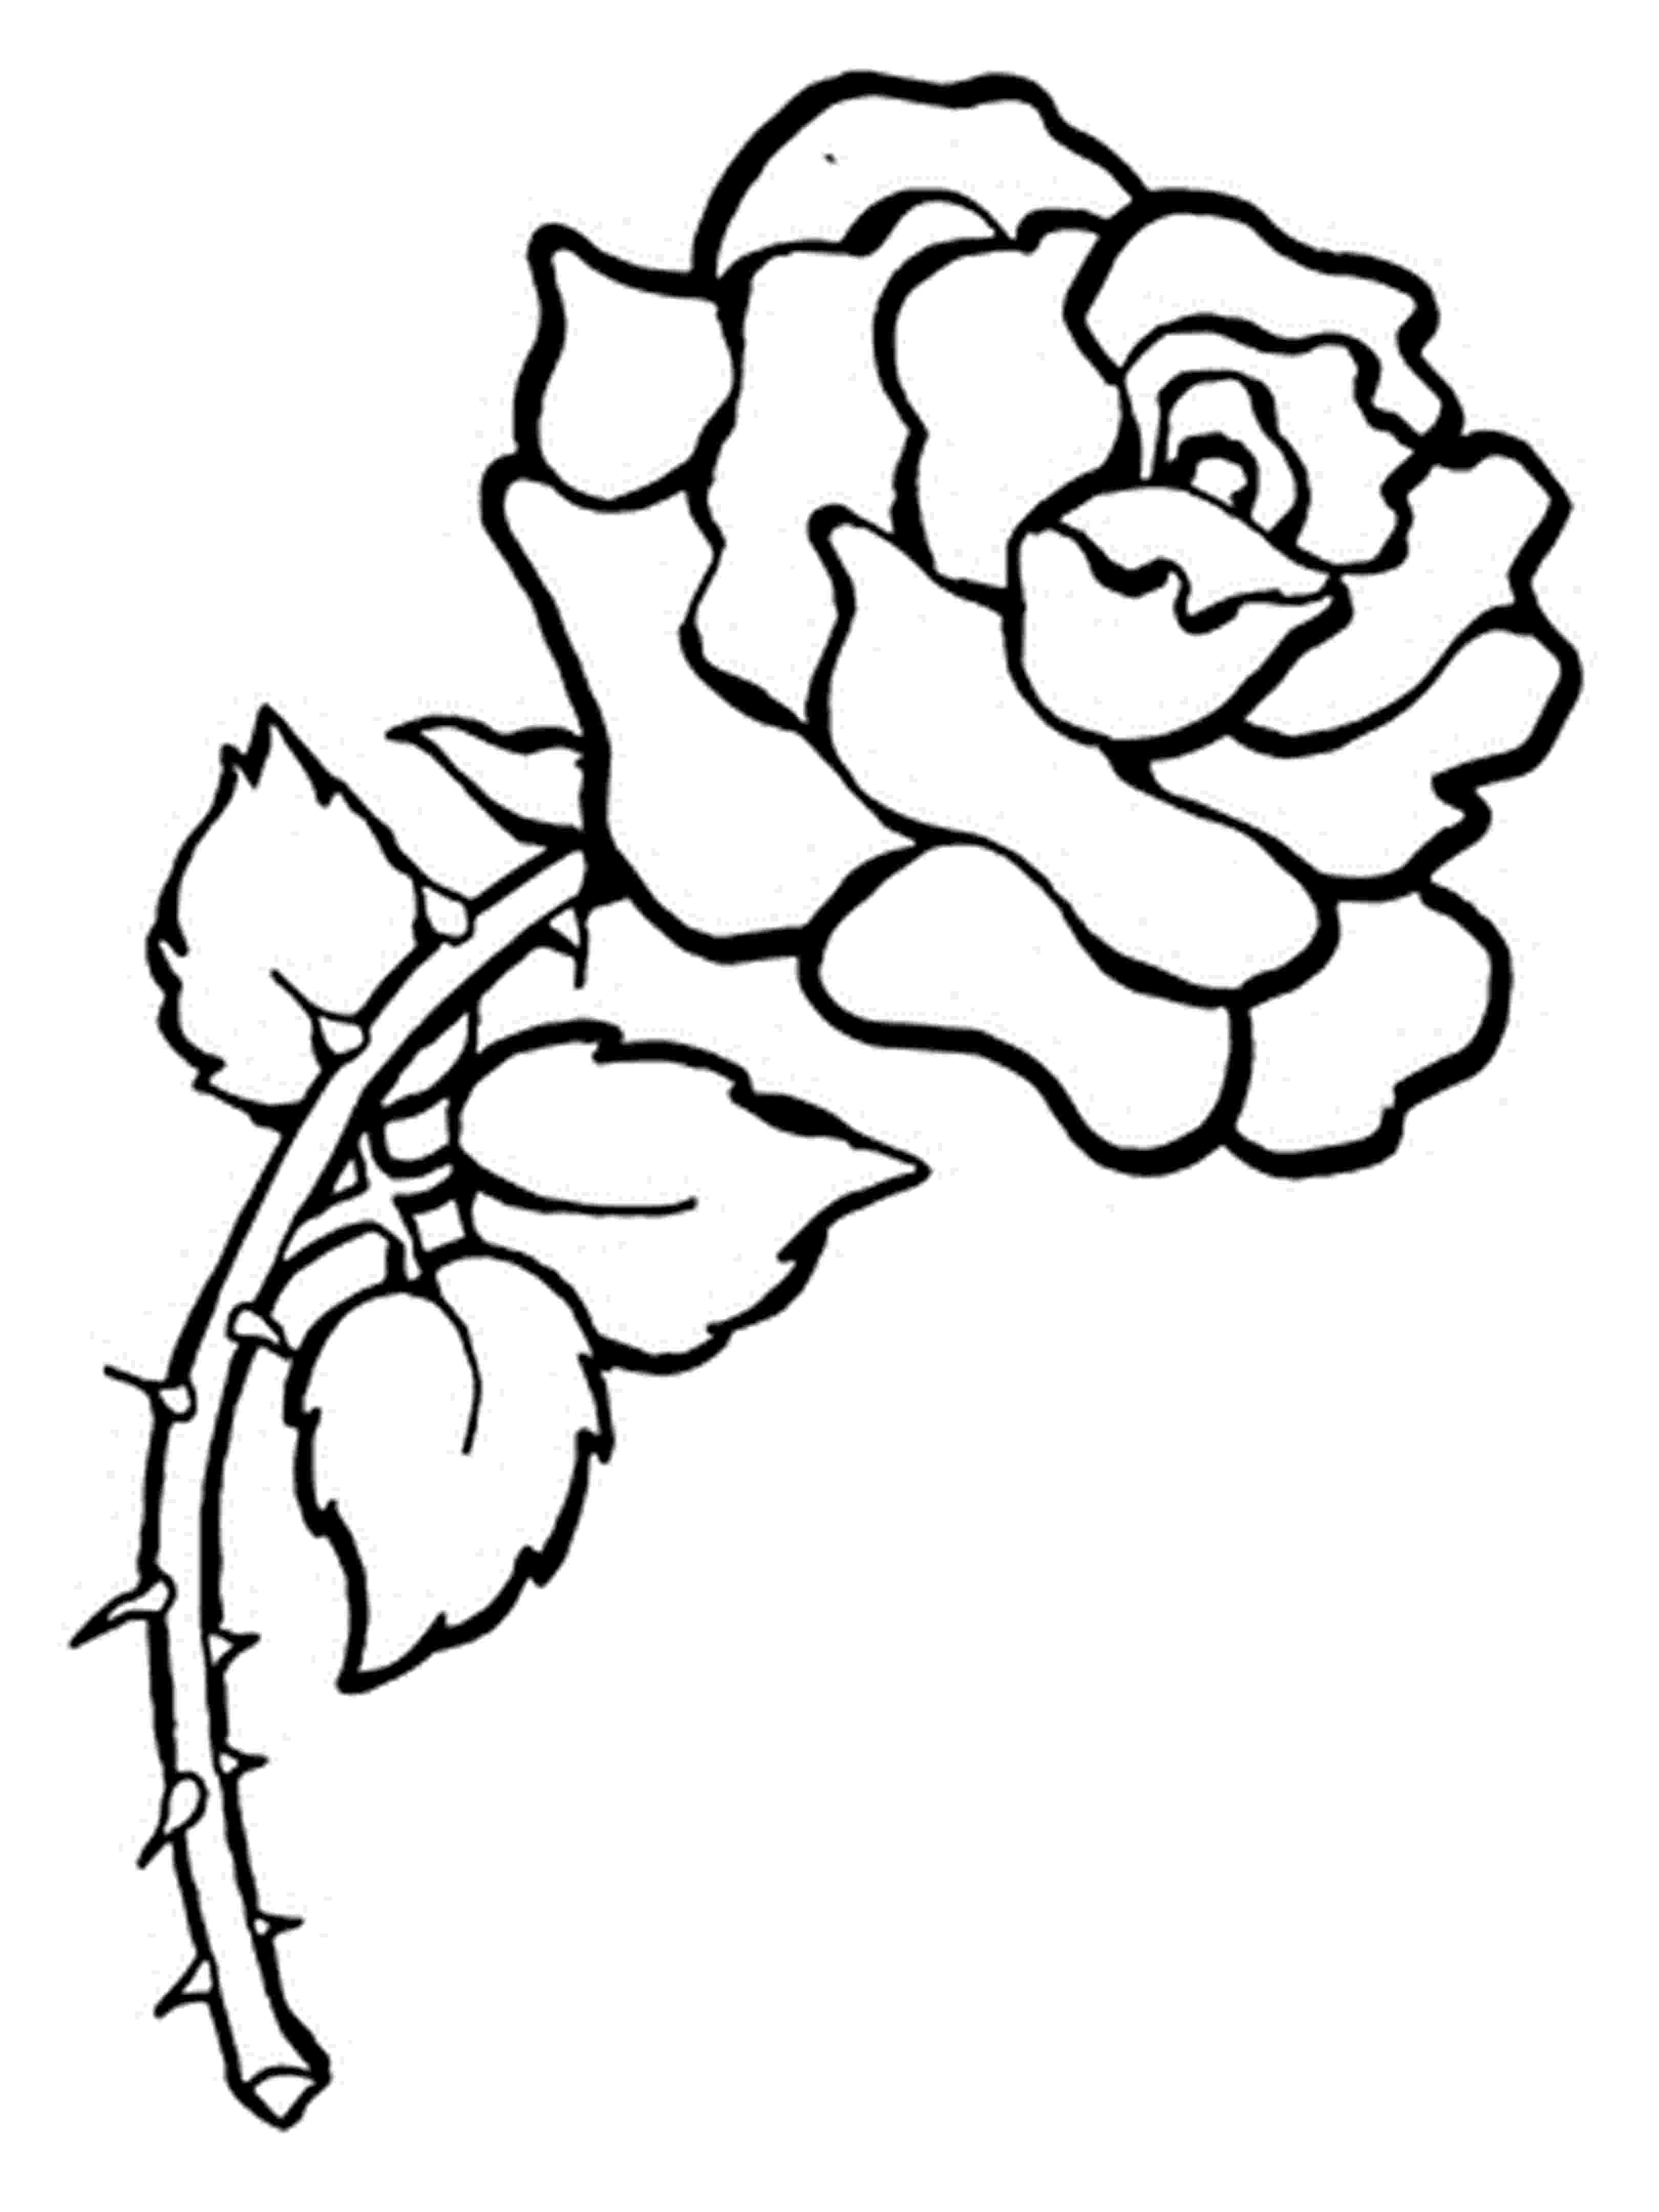 flower printable pictures free printable flower coloring pages for kids best flower printable pictures 1 5